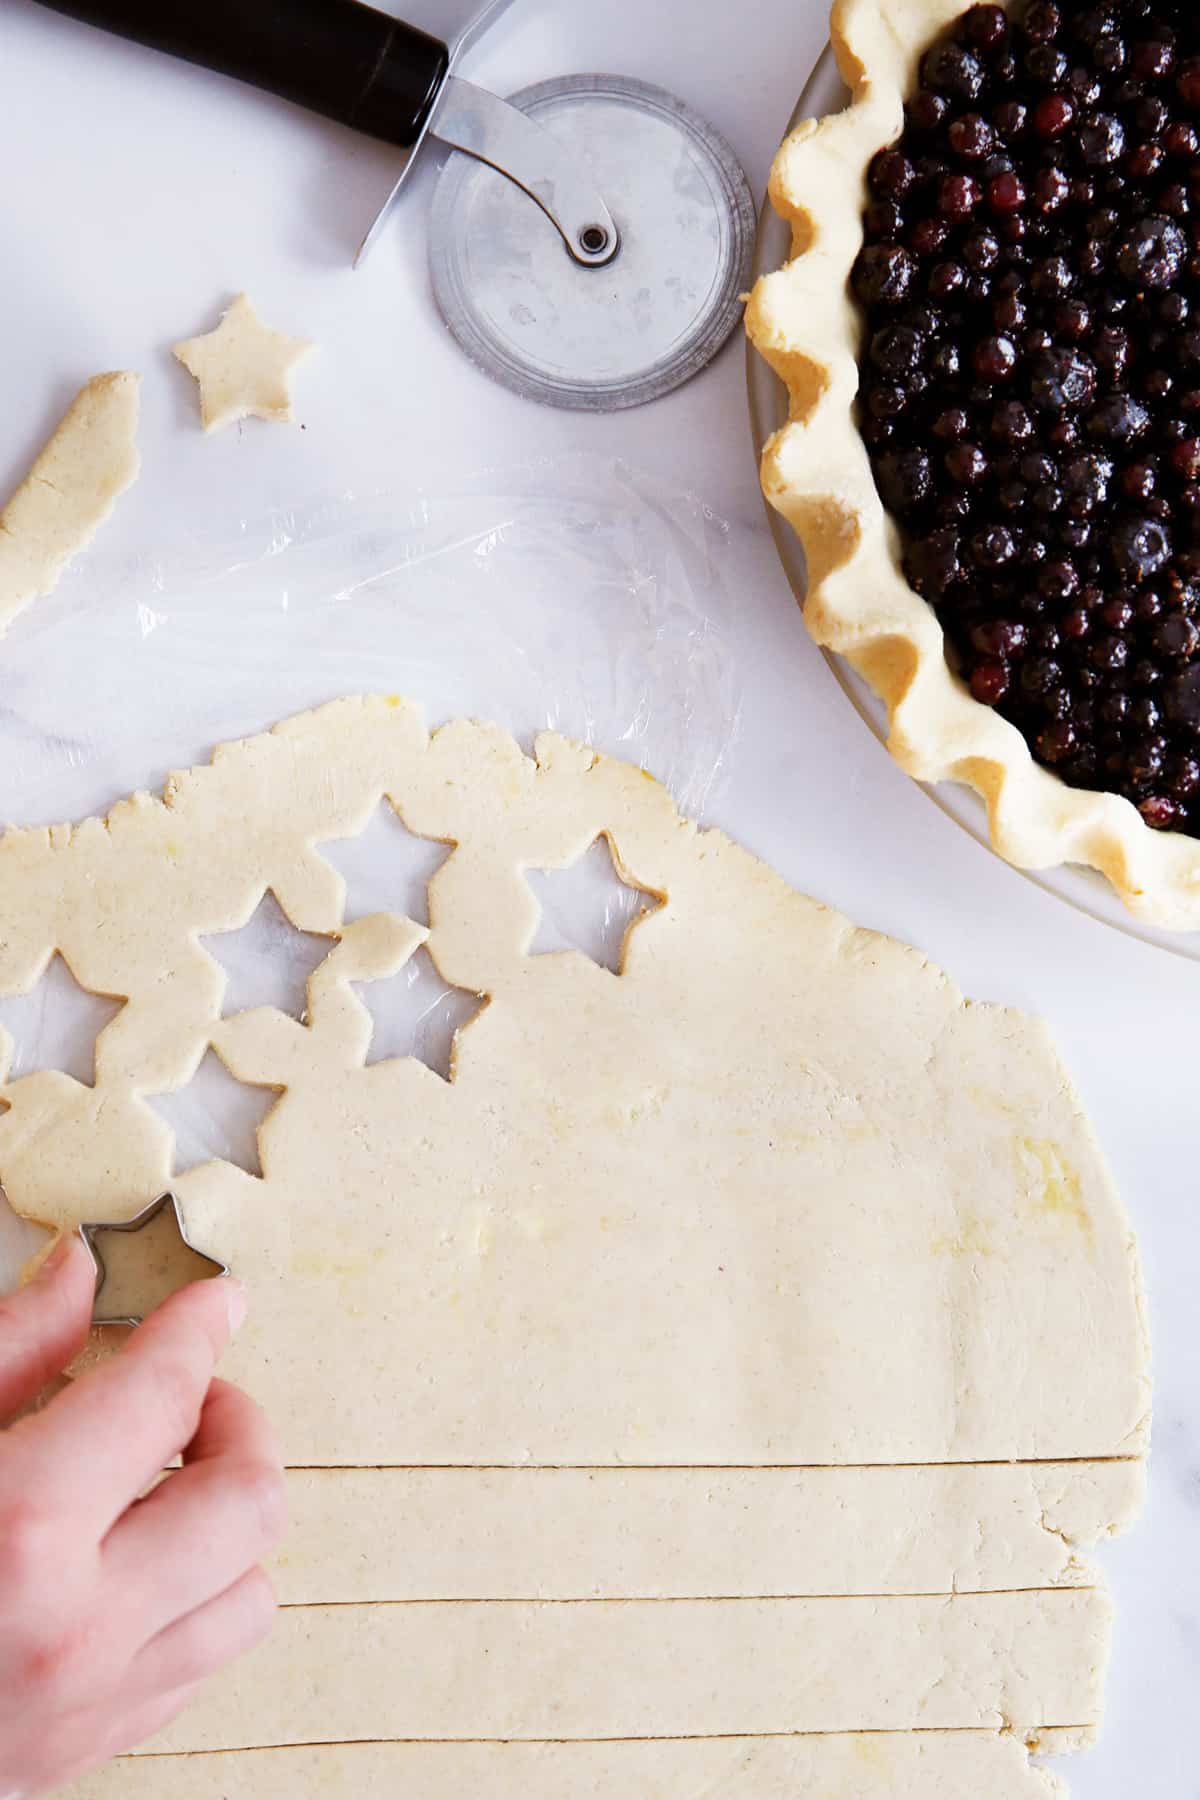 stars and stripes for blueberry pie decoration